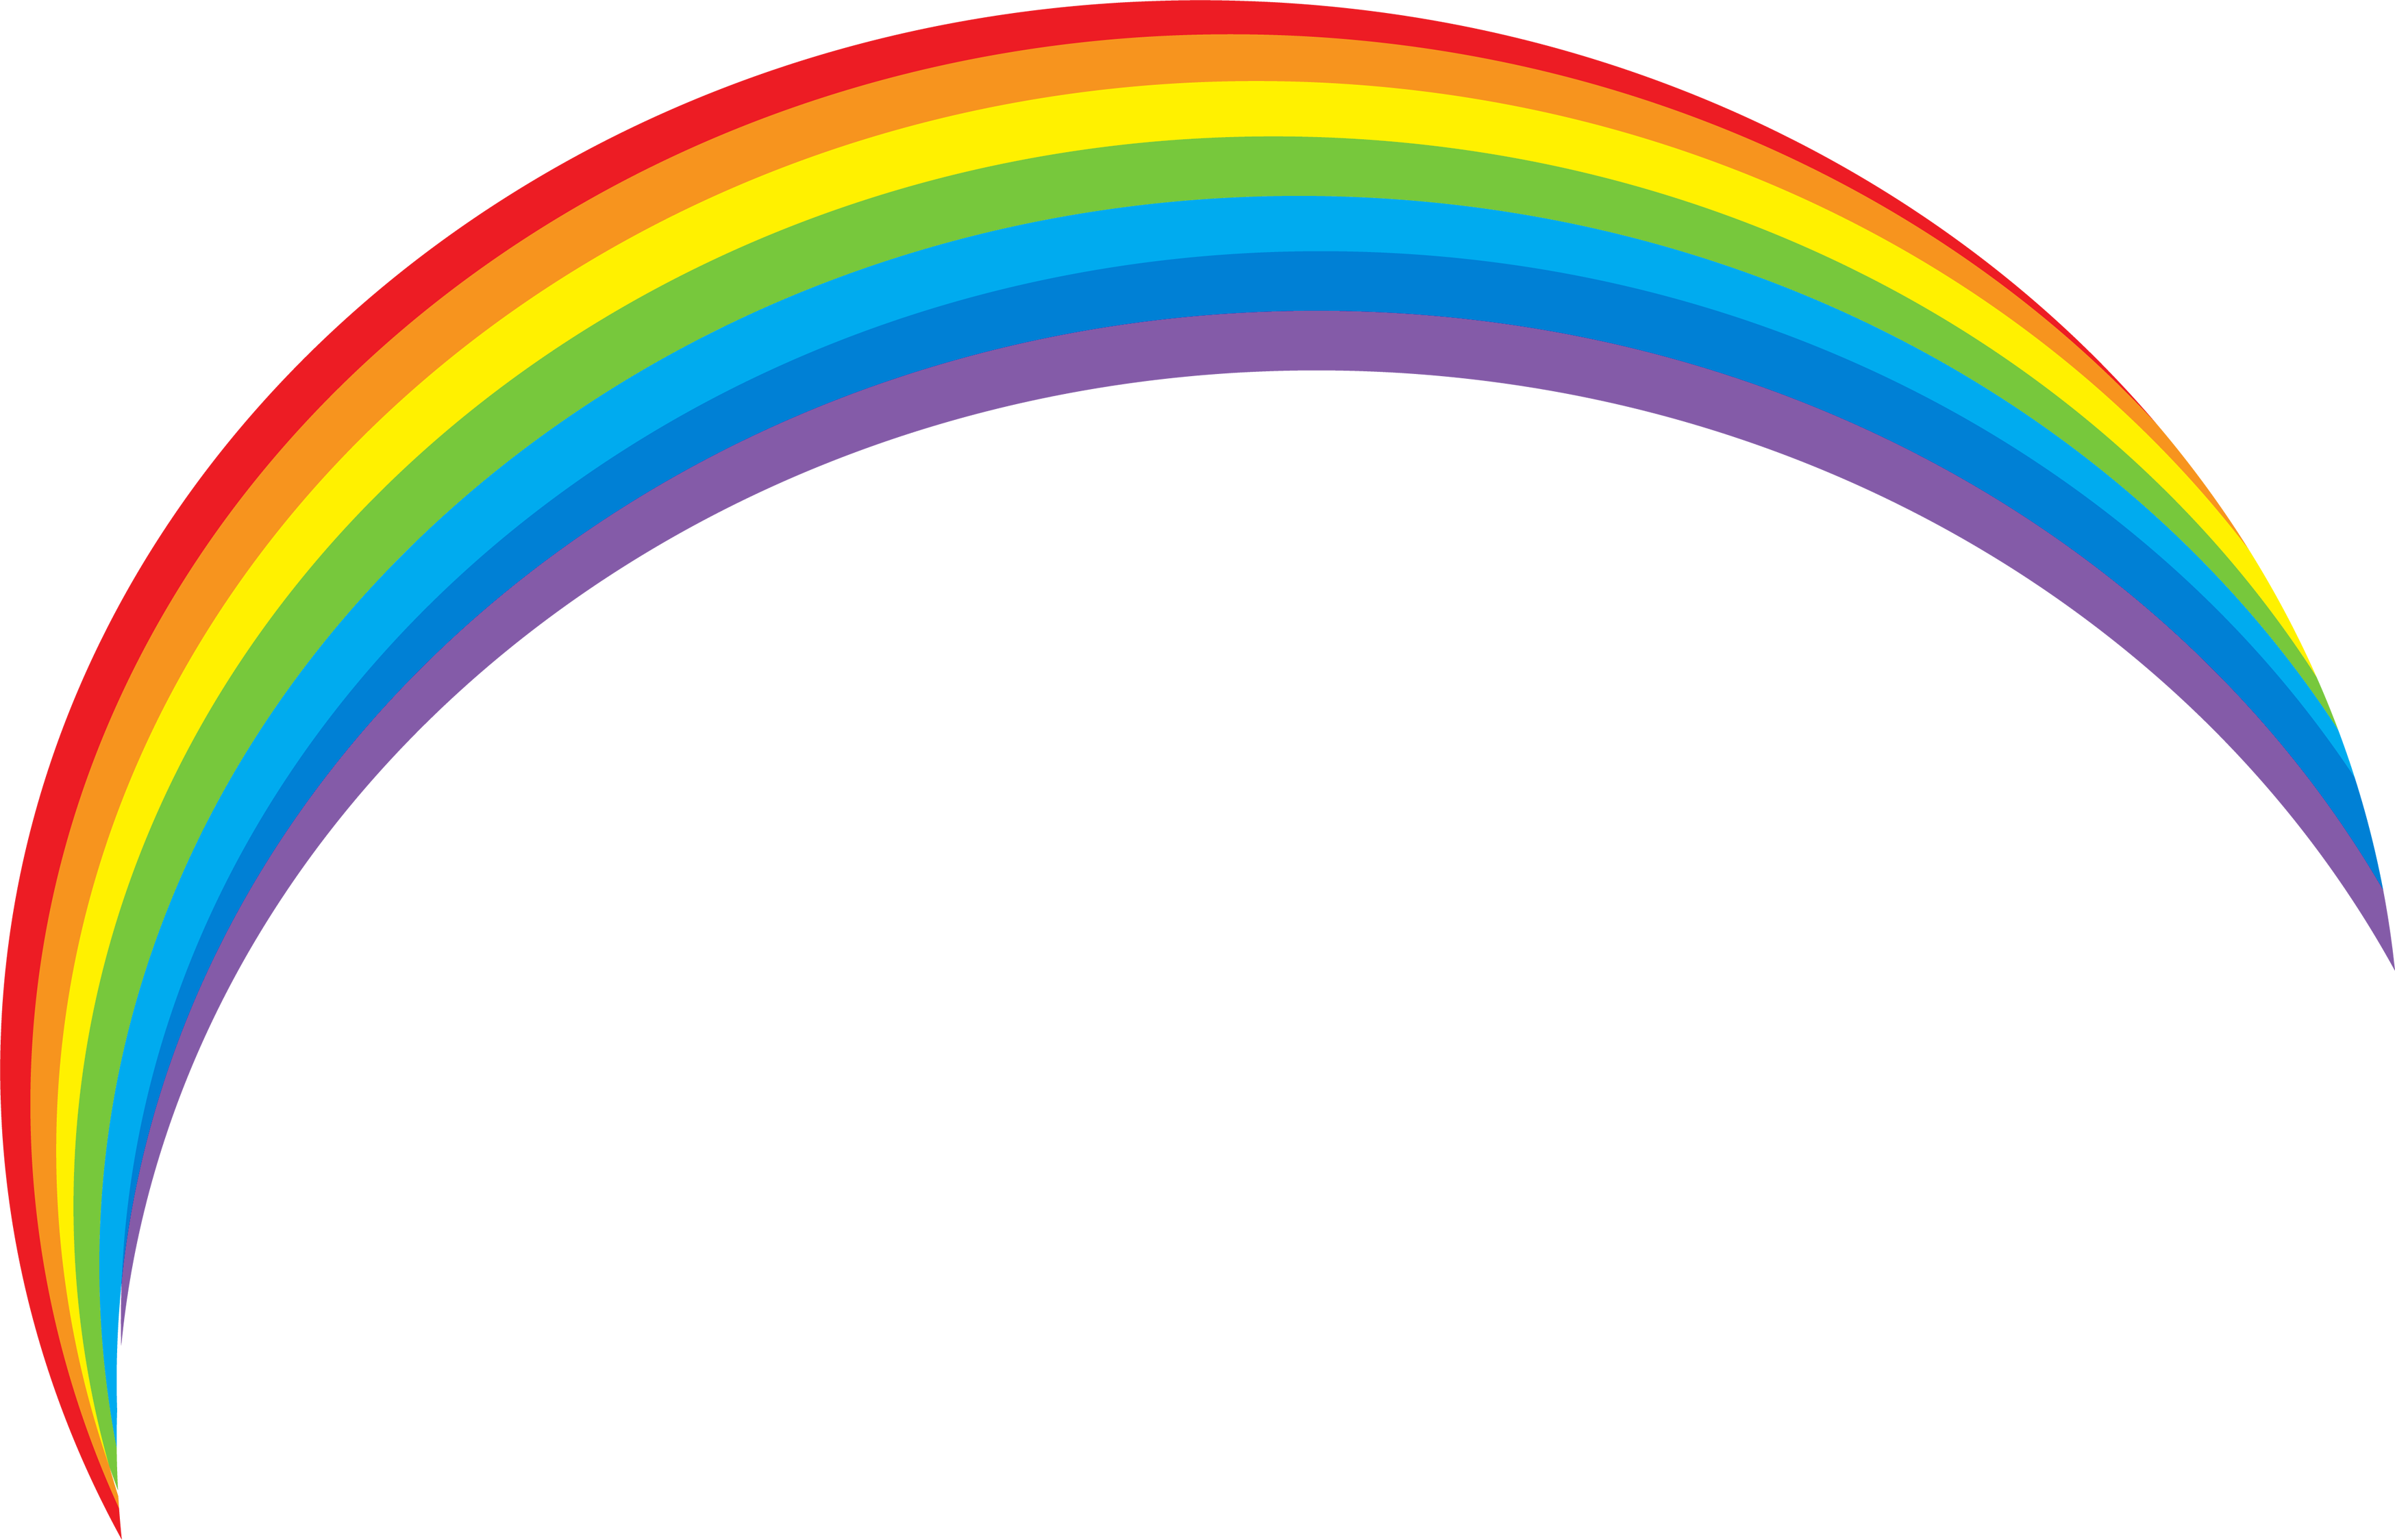 Rainbow Clipart Png image #6994